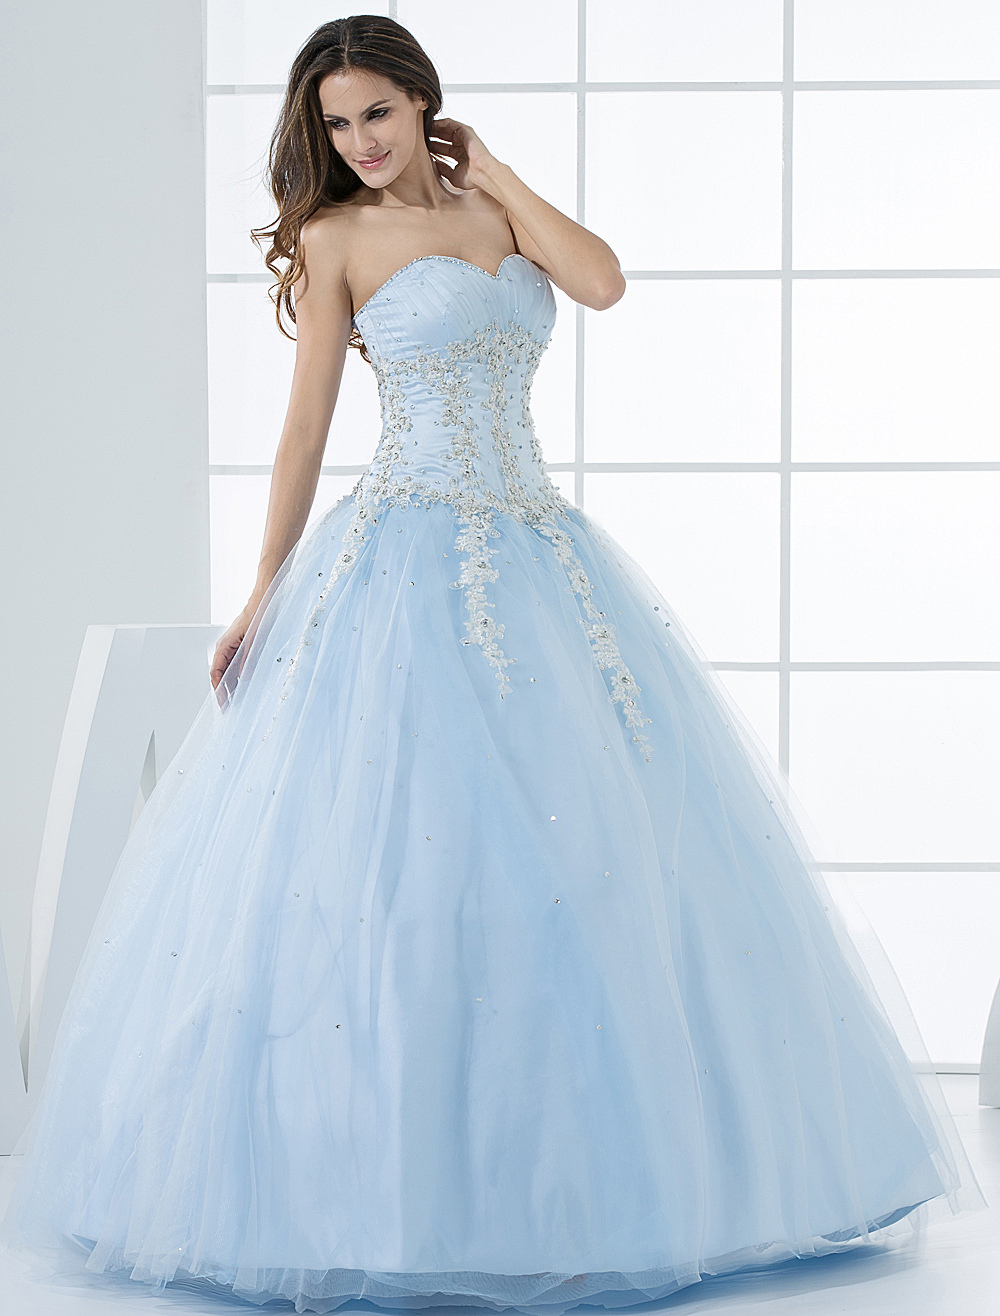 0945d54cb Princess Wedding Dresses Pastel Blue Quinceanera Dress Lace Applique  Sweetheart Strapless Beading Tulle Floor Length Bridal Gown - Milanoo.com